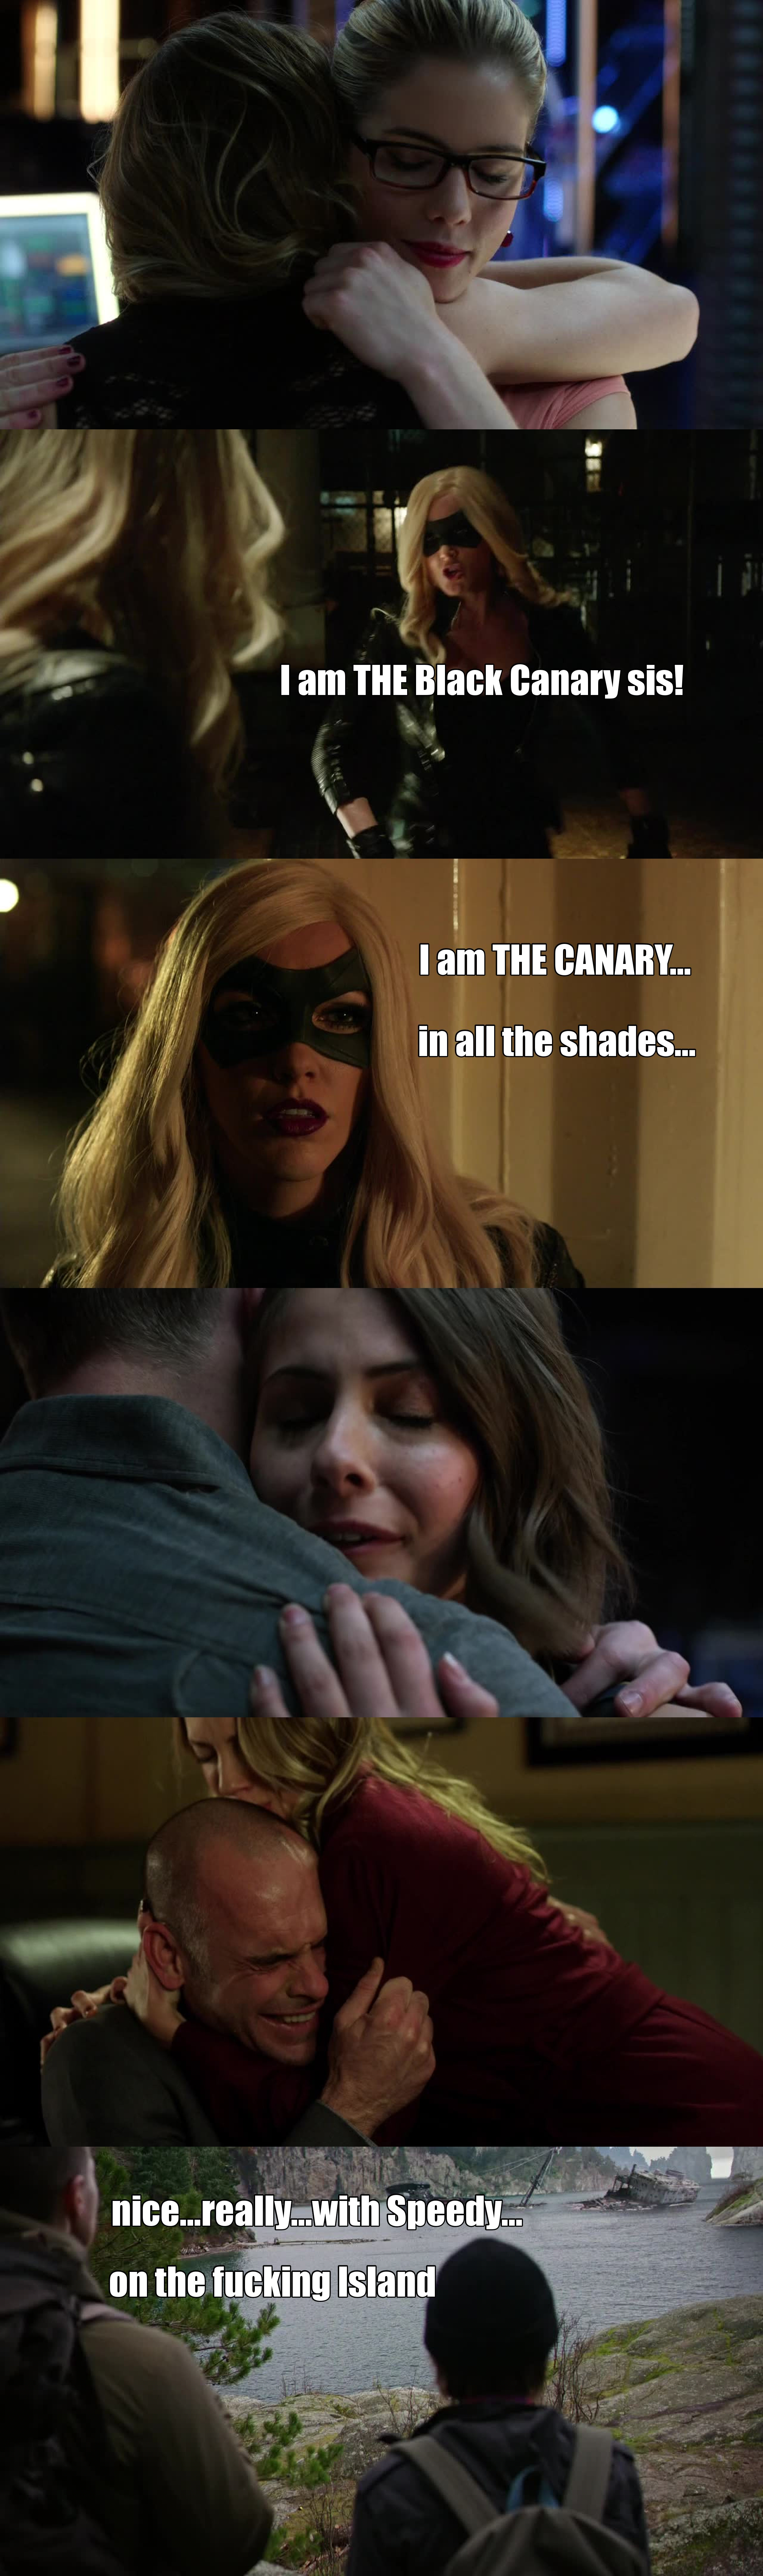 """THAT!!!!............WAS AN AWESOME EPISODE   Seriously, I think all the fans are satisfied now:  -Laurel being """"kicked"""" by her own sister -Thea knowing about Oli and crashing in the lair -The jerk....the blond guy...DJ.....Ras' dog! -->D.E.A.D. -->Perfect  -Laurel coming clean to her father Thea NOT ANGRY AT ALL except against Malcom --> UNEXPECTED --> AWESOME  -Roy taking care of Thea no matter what. -Felicity..........well she definitely makes her point with Oli or Laurel  One of the best episode ever, lot of actions, emotions & changes/evolutions"""